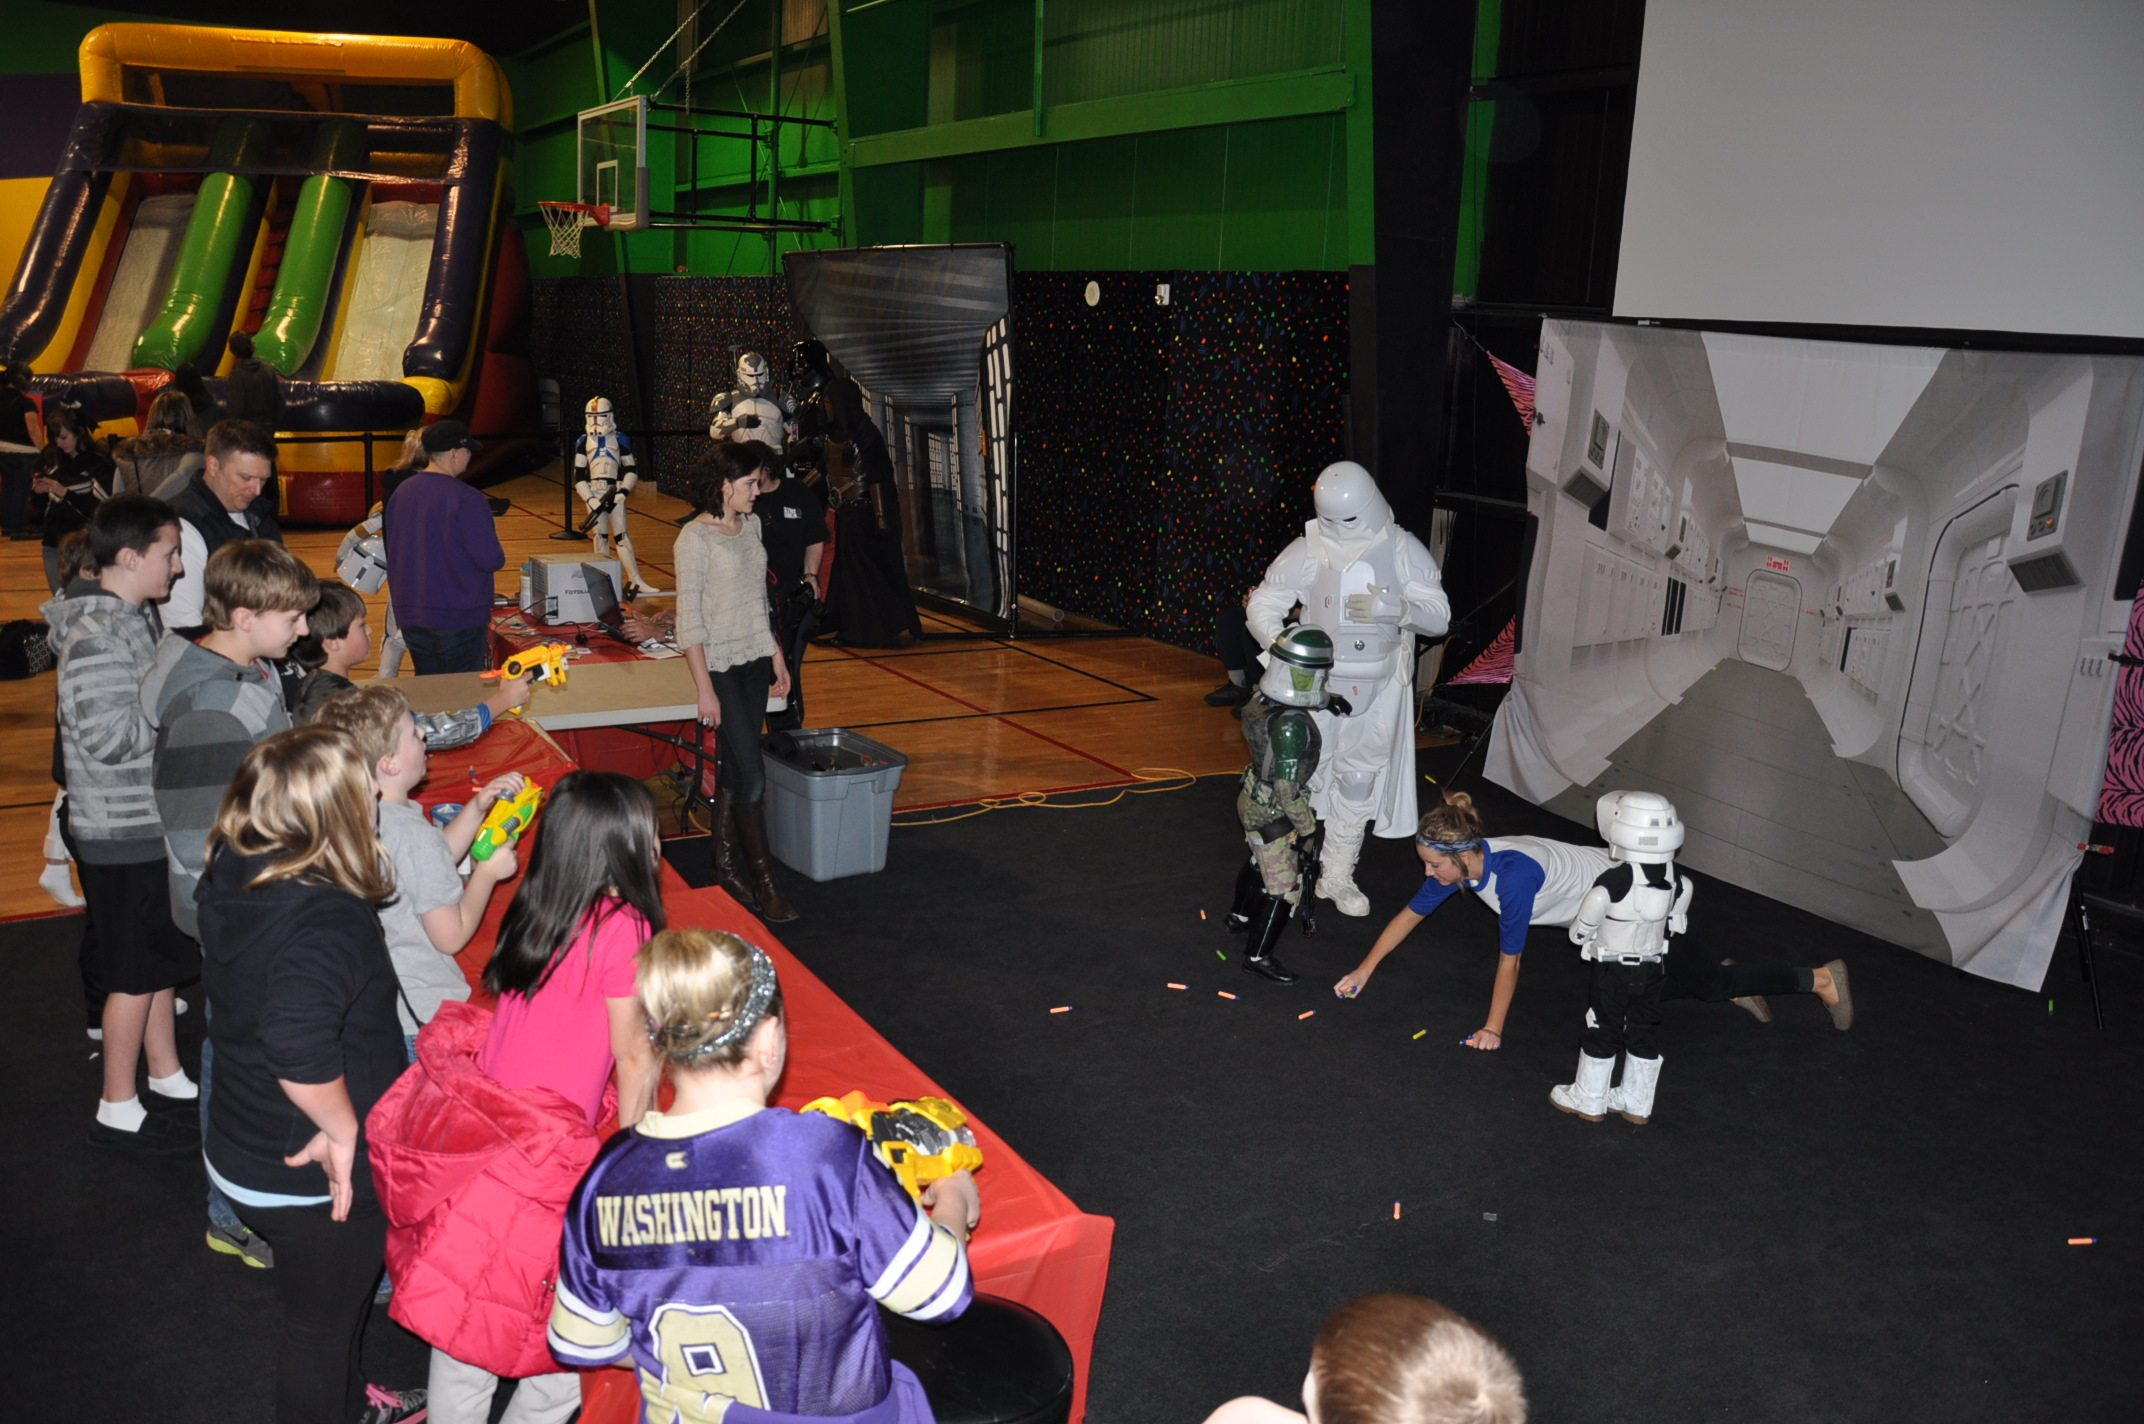 NNerf-A-Trooper for Nate's Seizure Assist Dog. Image: Chris Cardwell